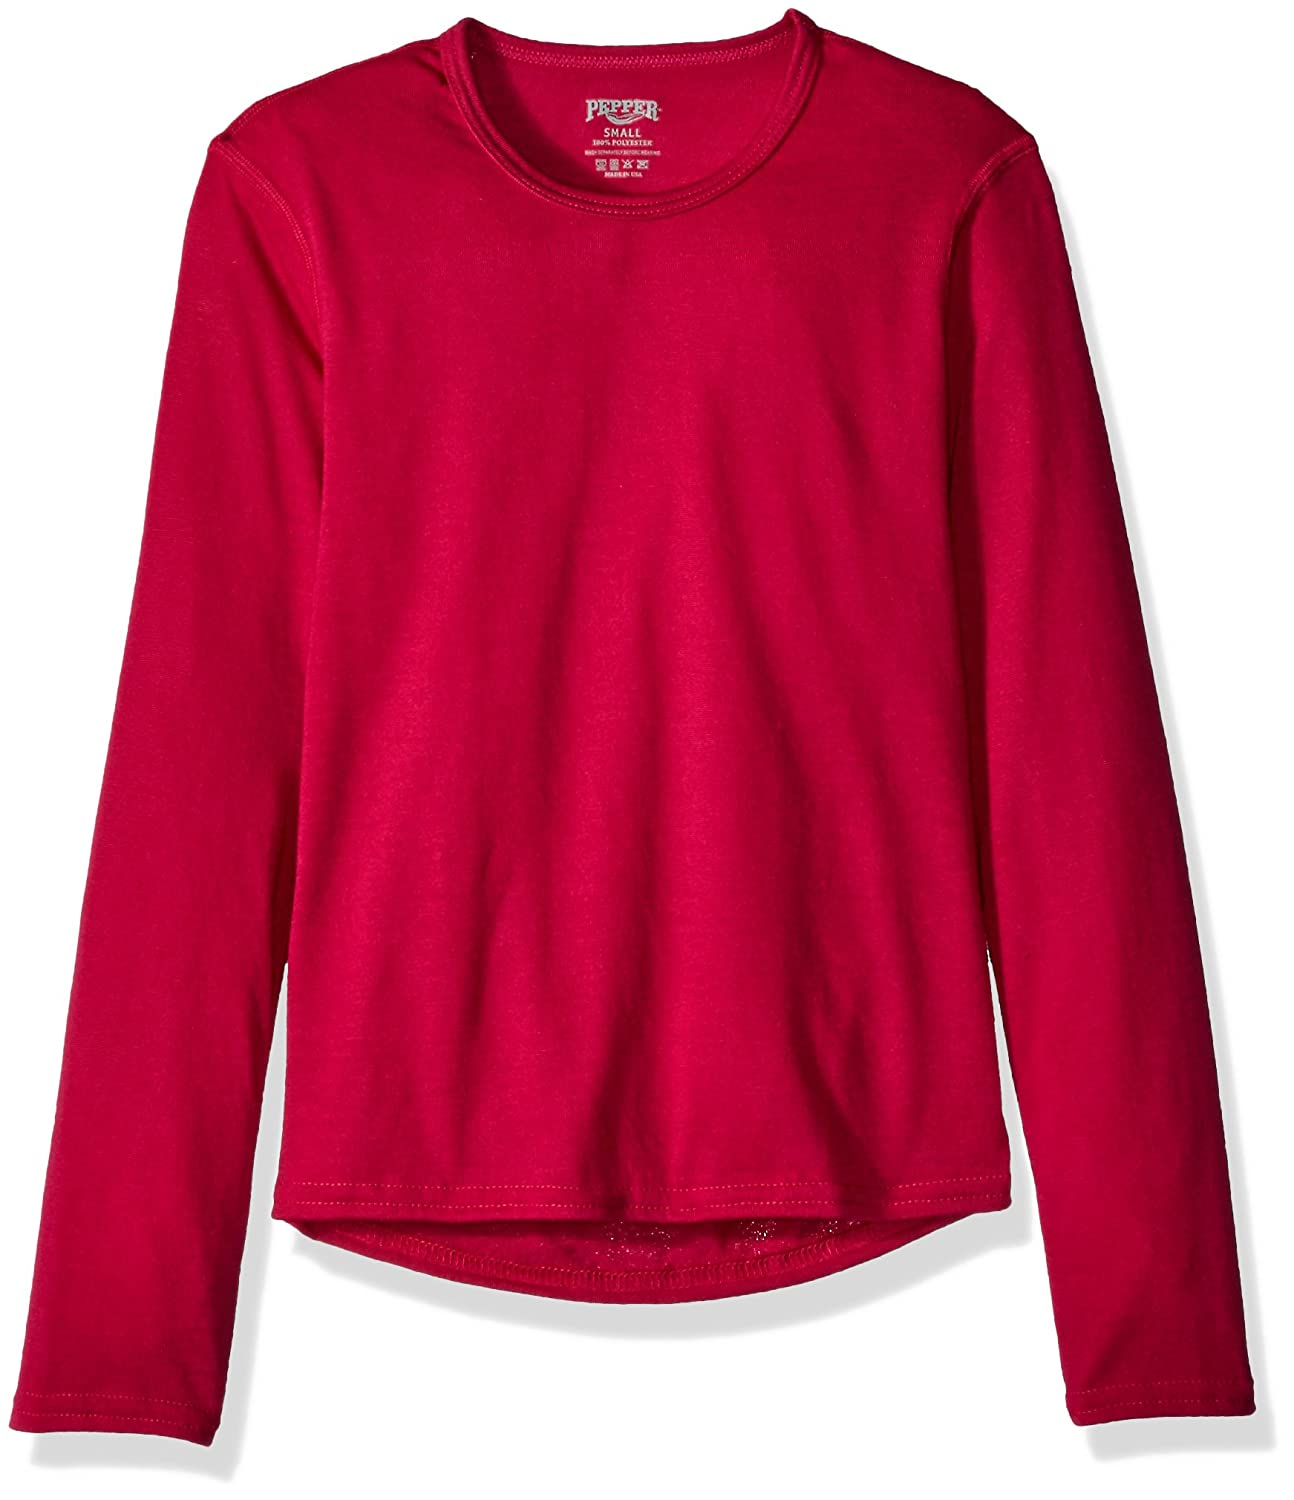 Hot Chillys Youth Pepper Skins Crewneck Top PS3400